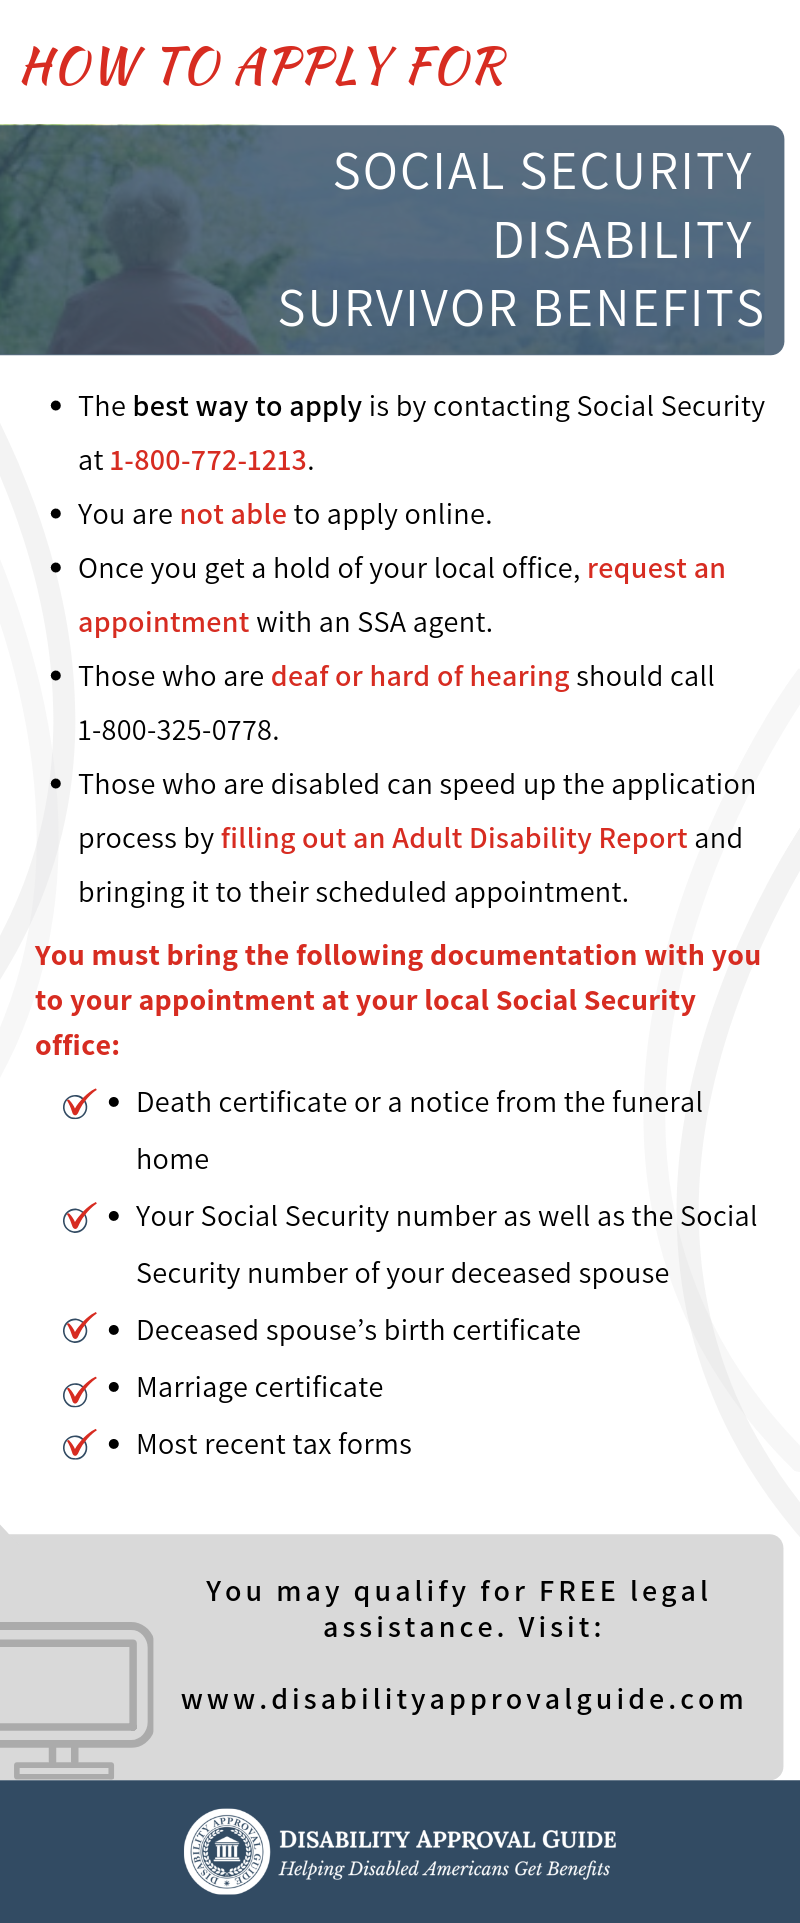 What You Should Know About Disability Survivor Benefits Social Security Disability Social Security Benefits How To Apply